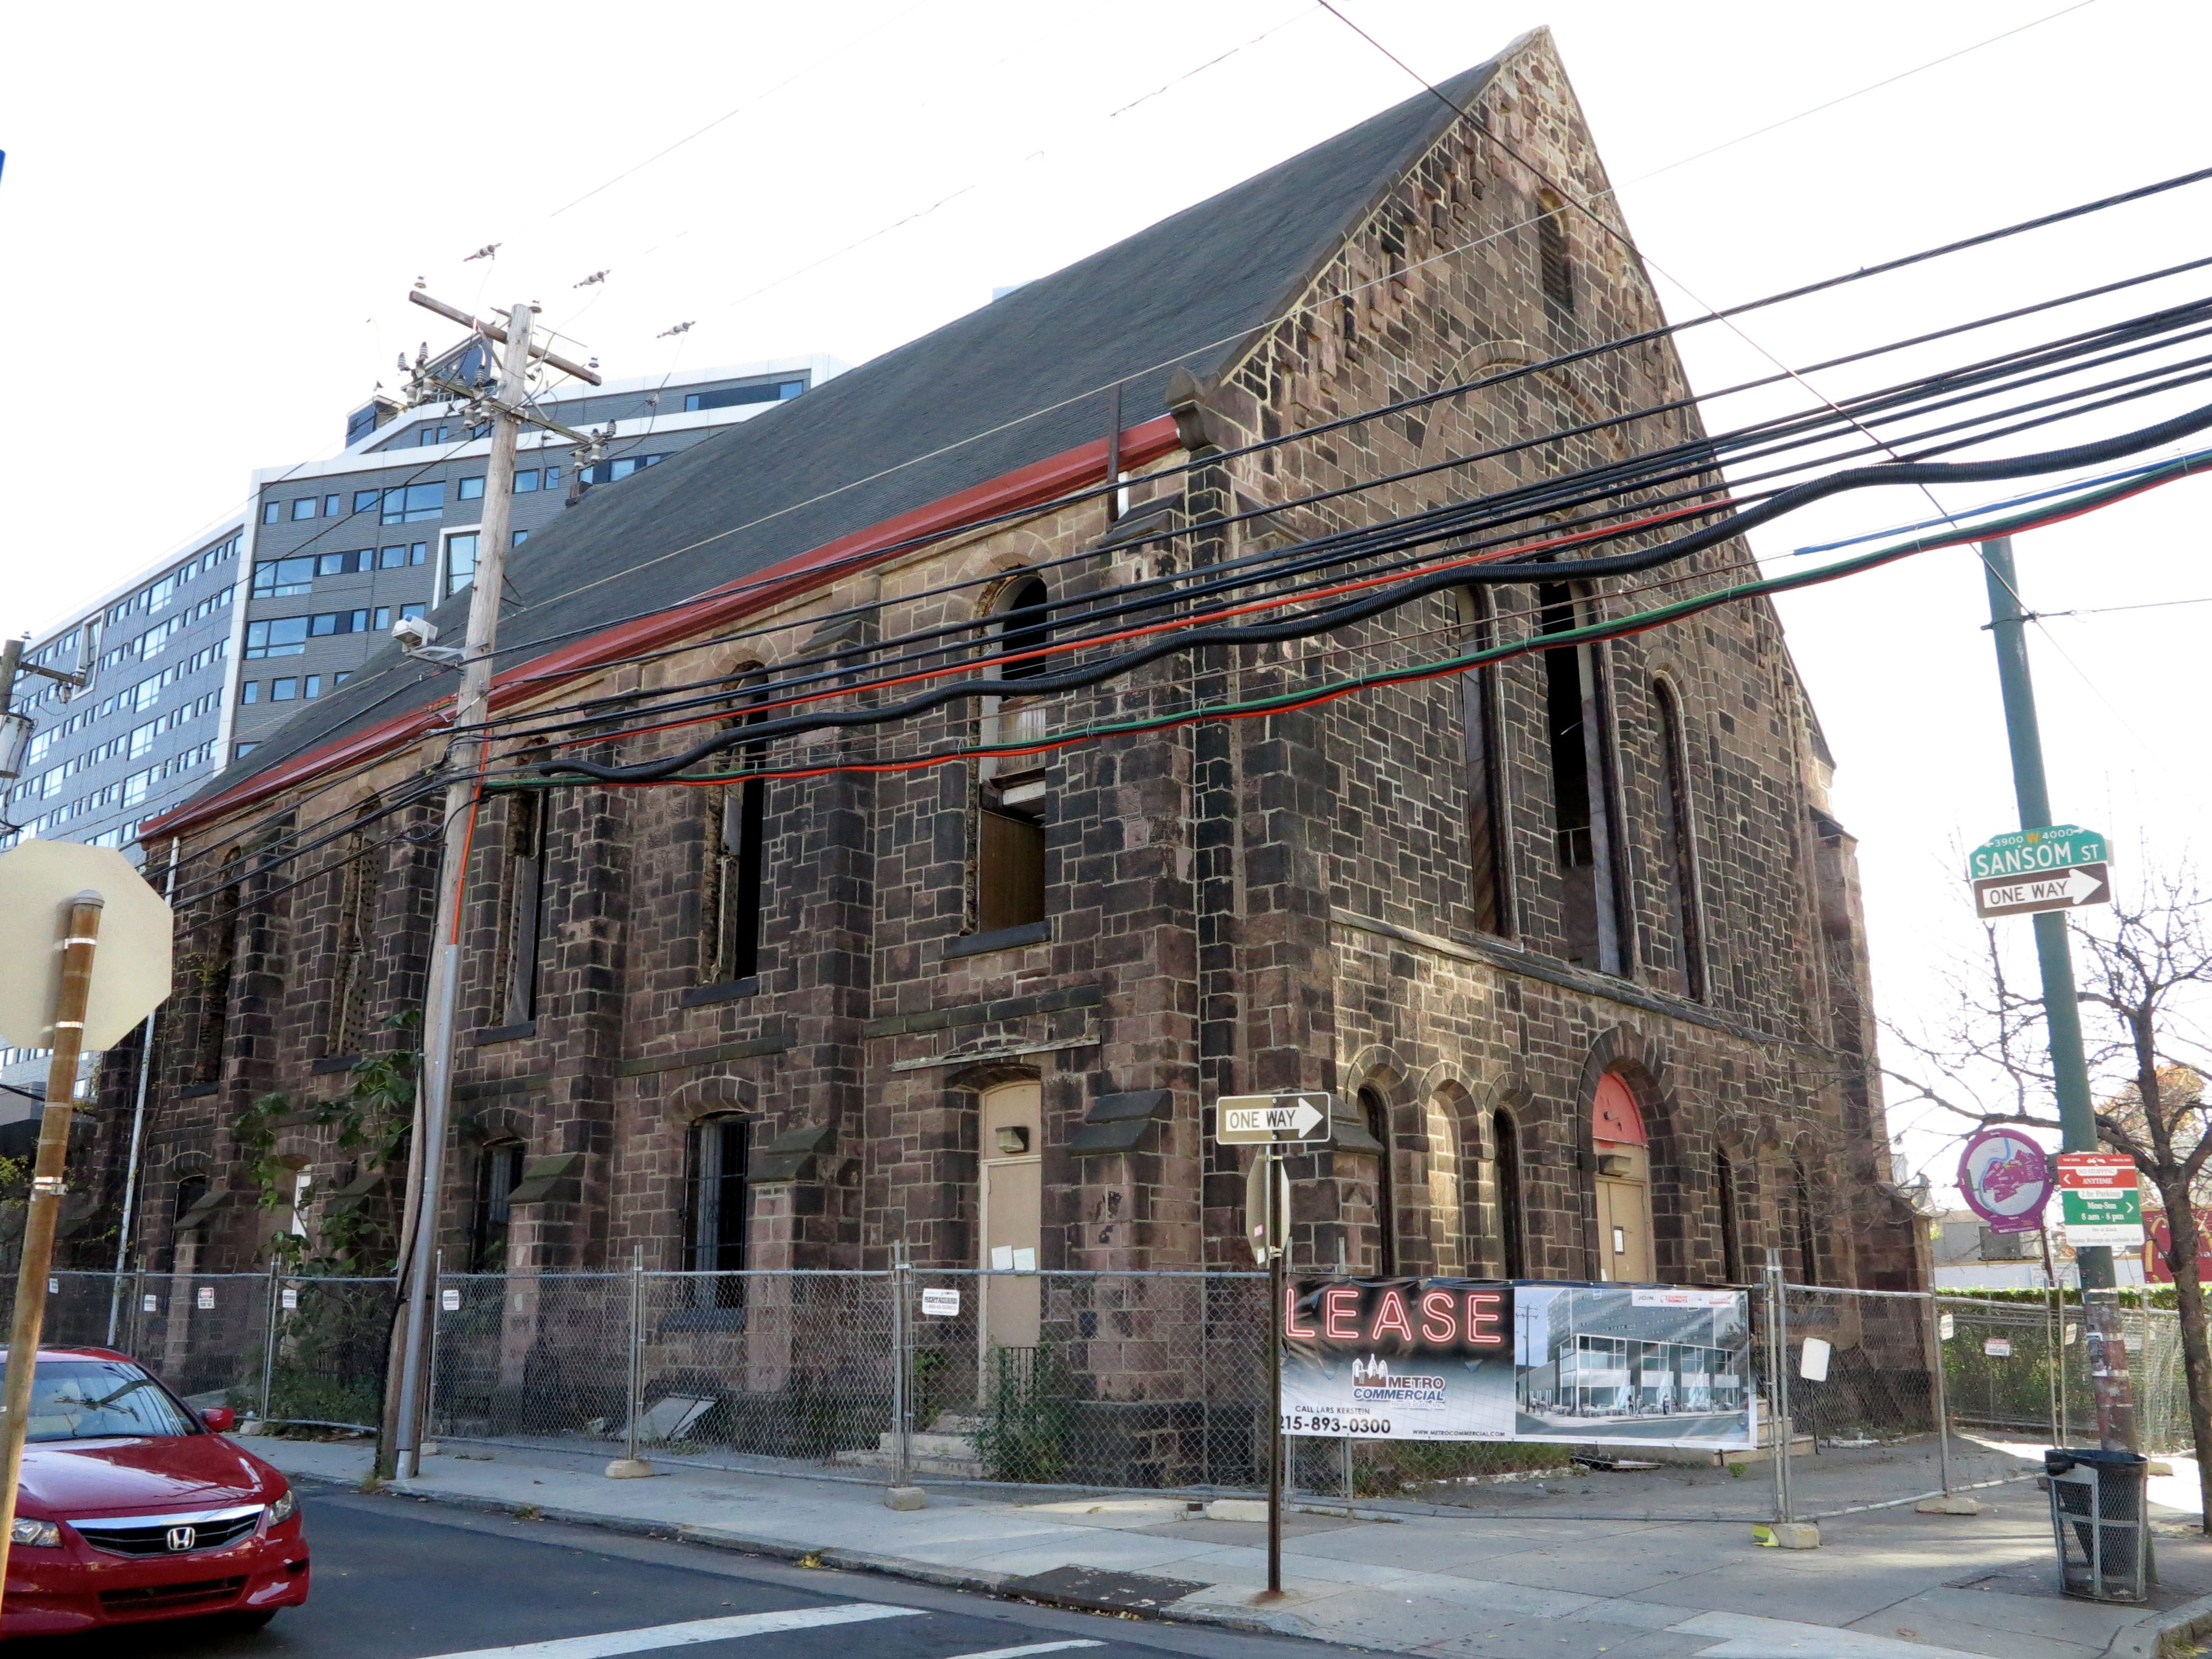 40th Street Methodist Episcopal Church, 40th and Sansom, November 2013